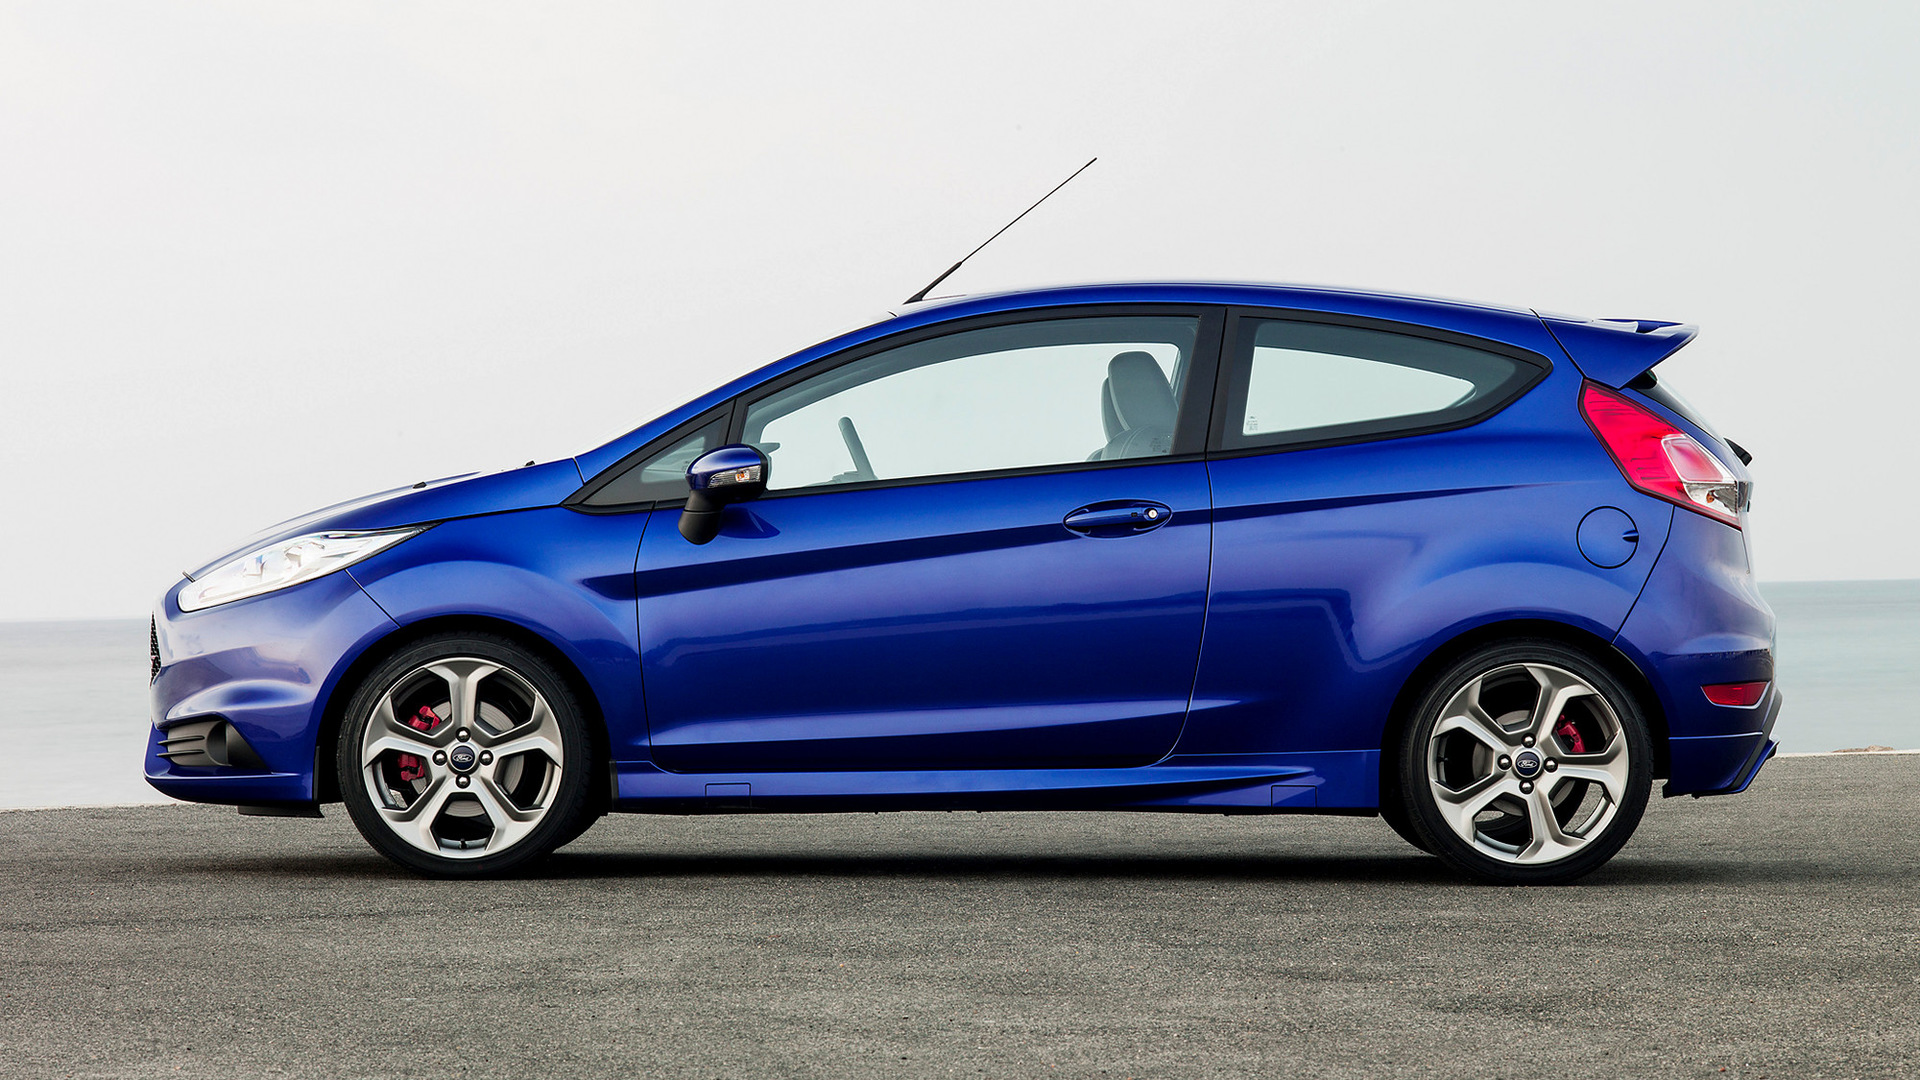 Ford Fiesta St 3 Door 2013 Wallpapers And Hd Images